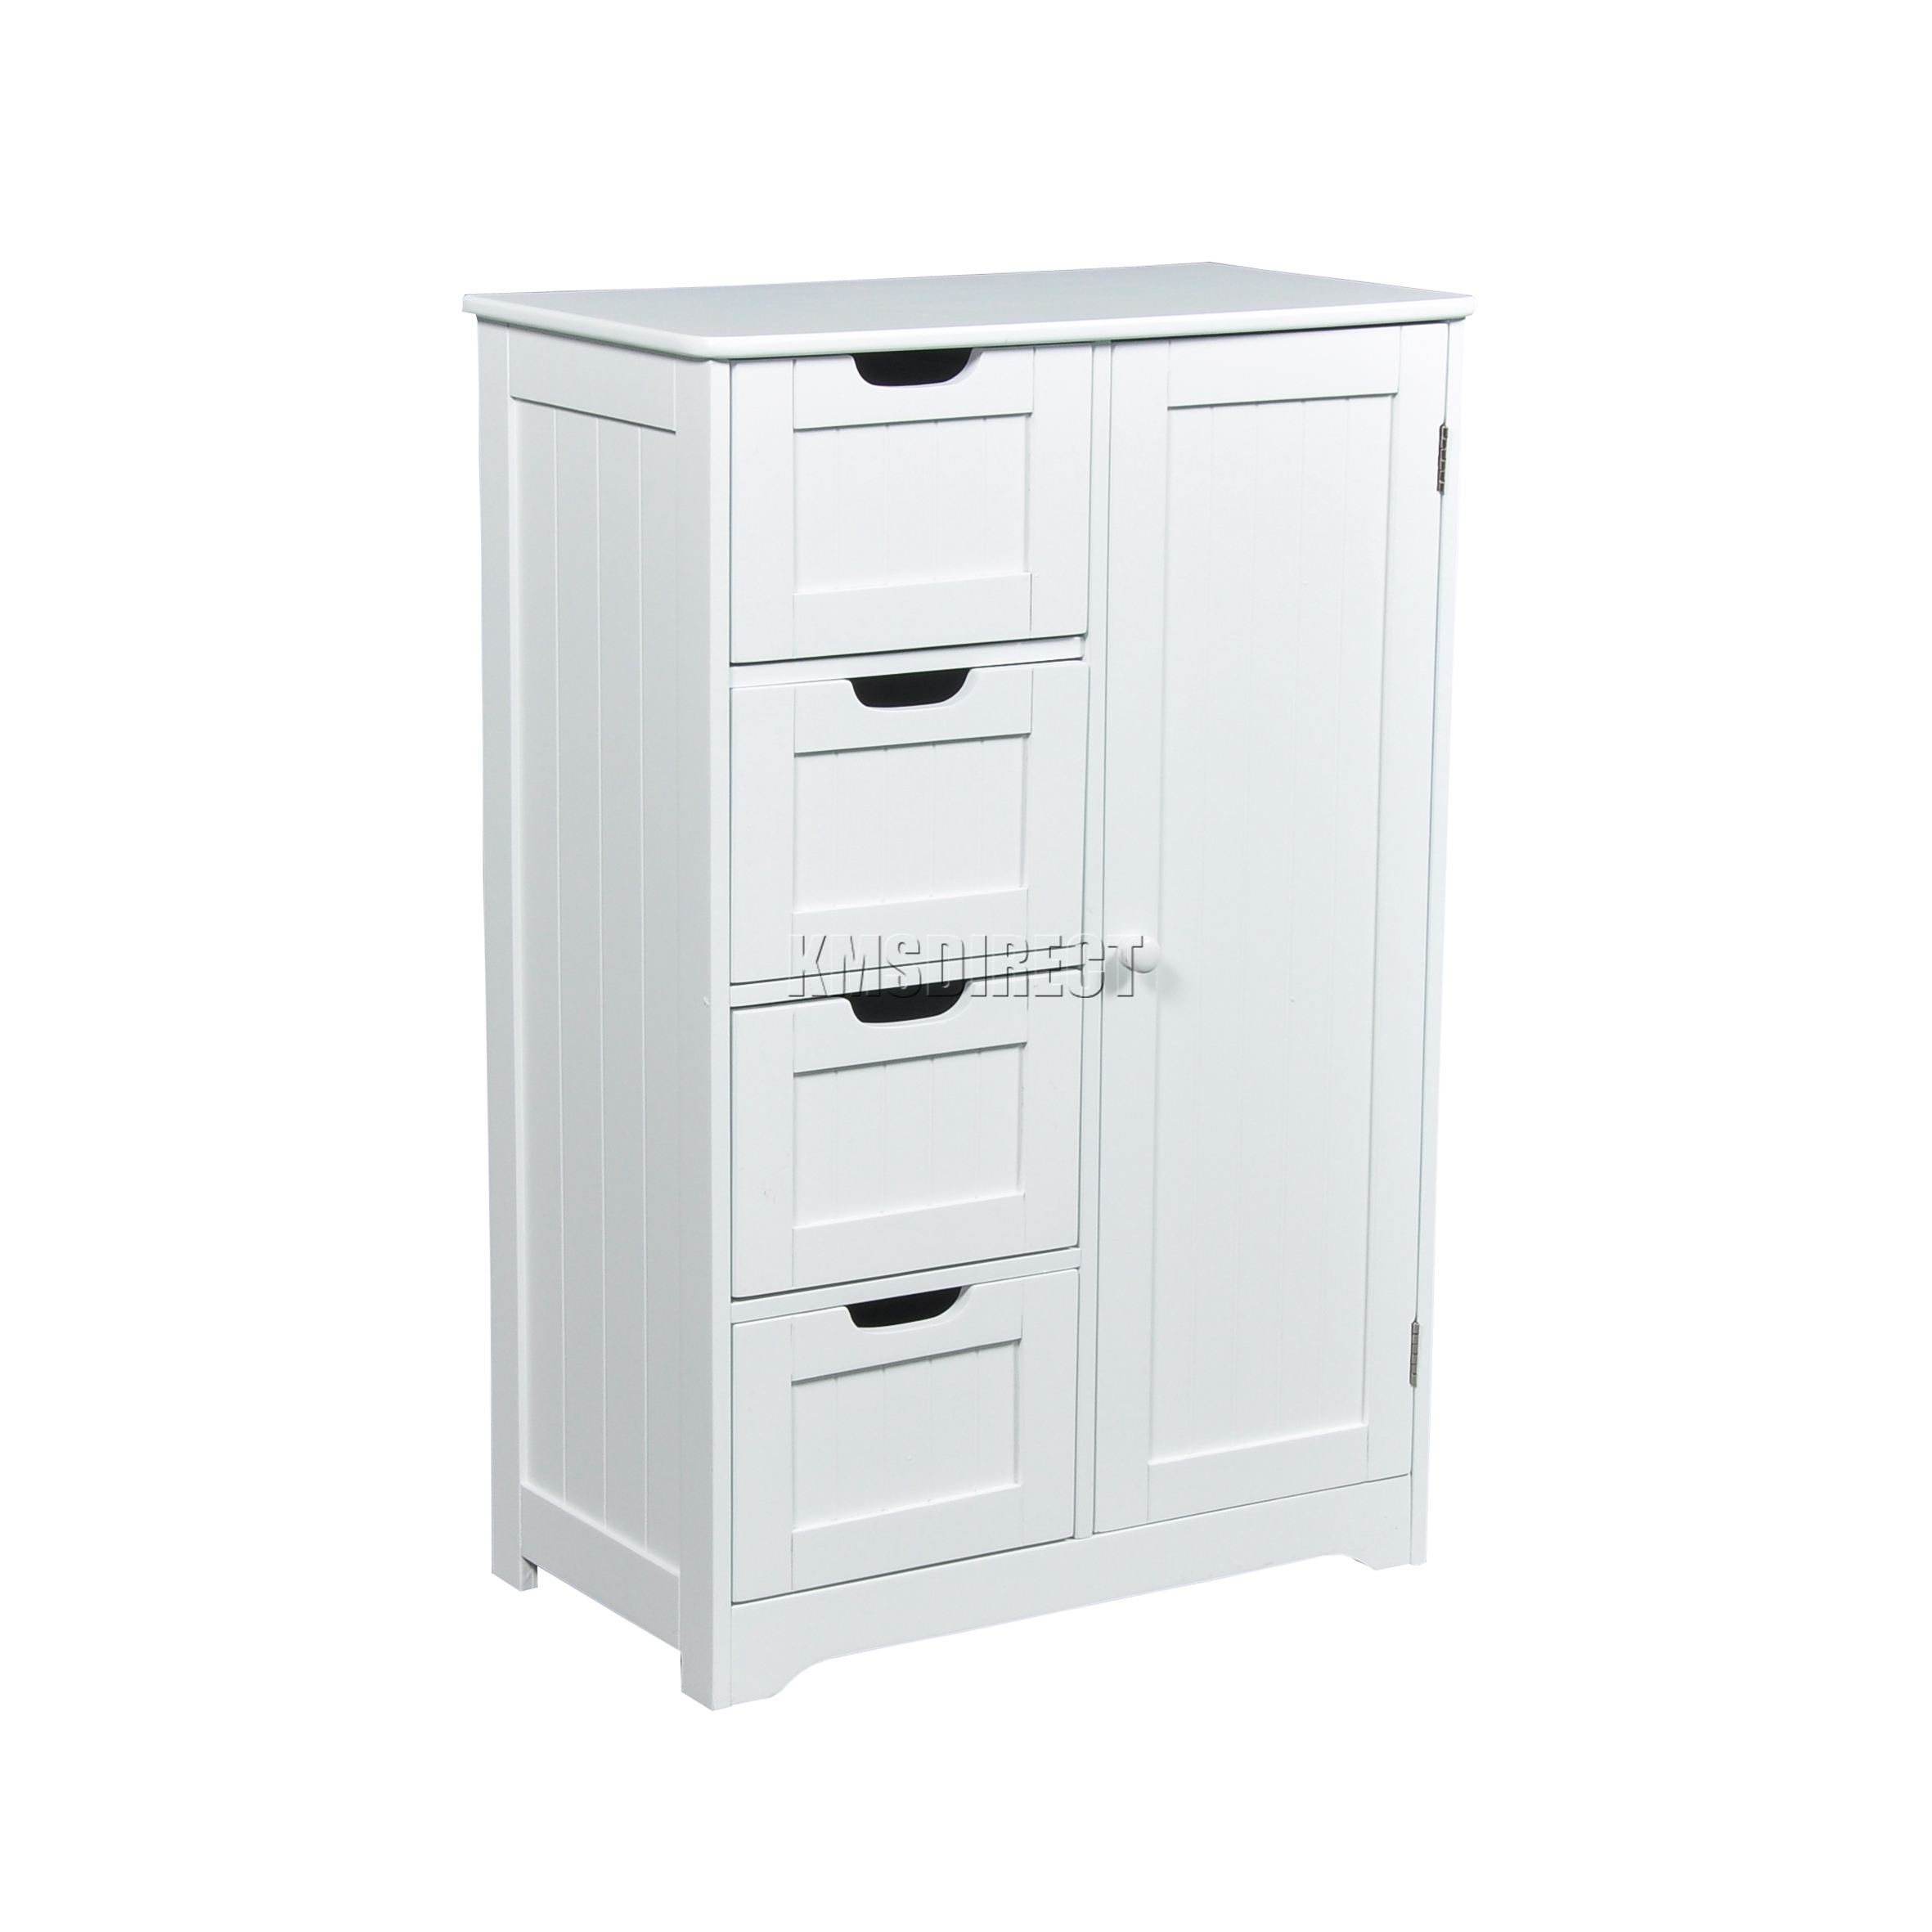 Kitchen Cabinets Or Open Shelving We Asked An Expert For: FoxHunter White Wooden 4 Drawer Bathroom Storage Cupboard